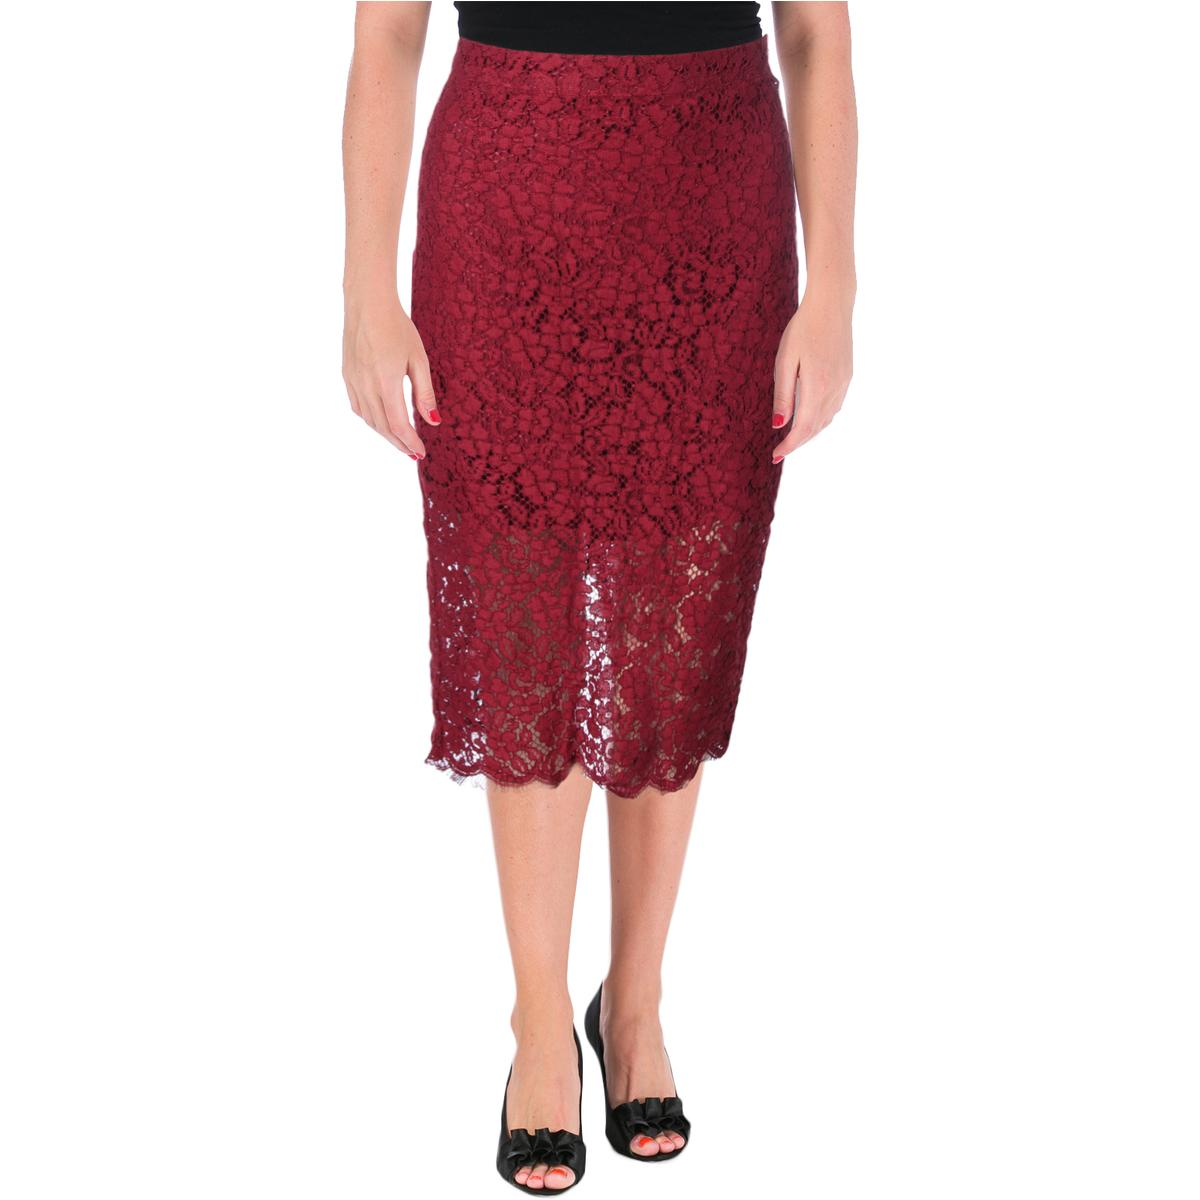 Free shipping BOTH ways on mid calf length skirts, from our vast selection of styles. Fast delivery, and 24/7/ real-person service with a smile. Click or call